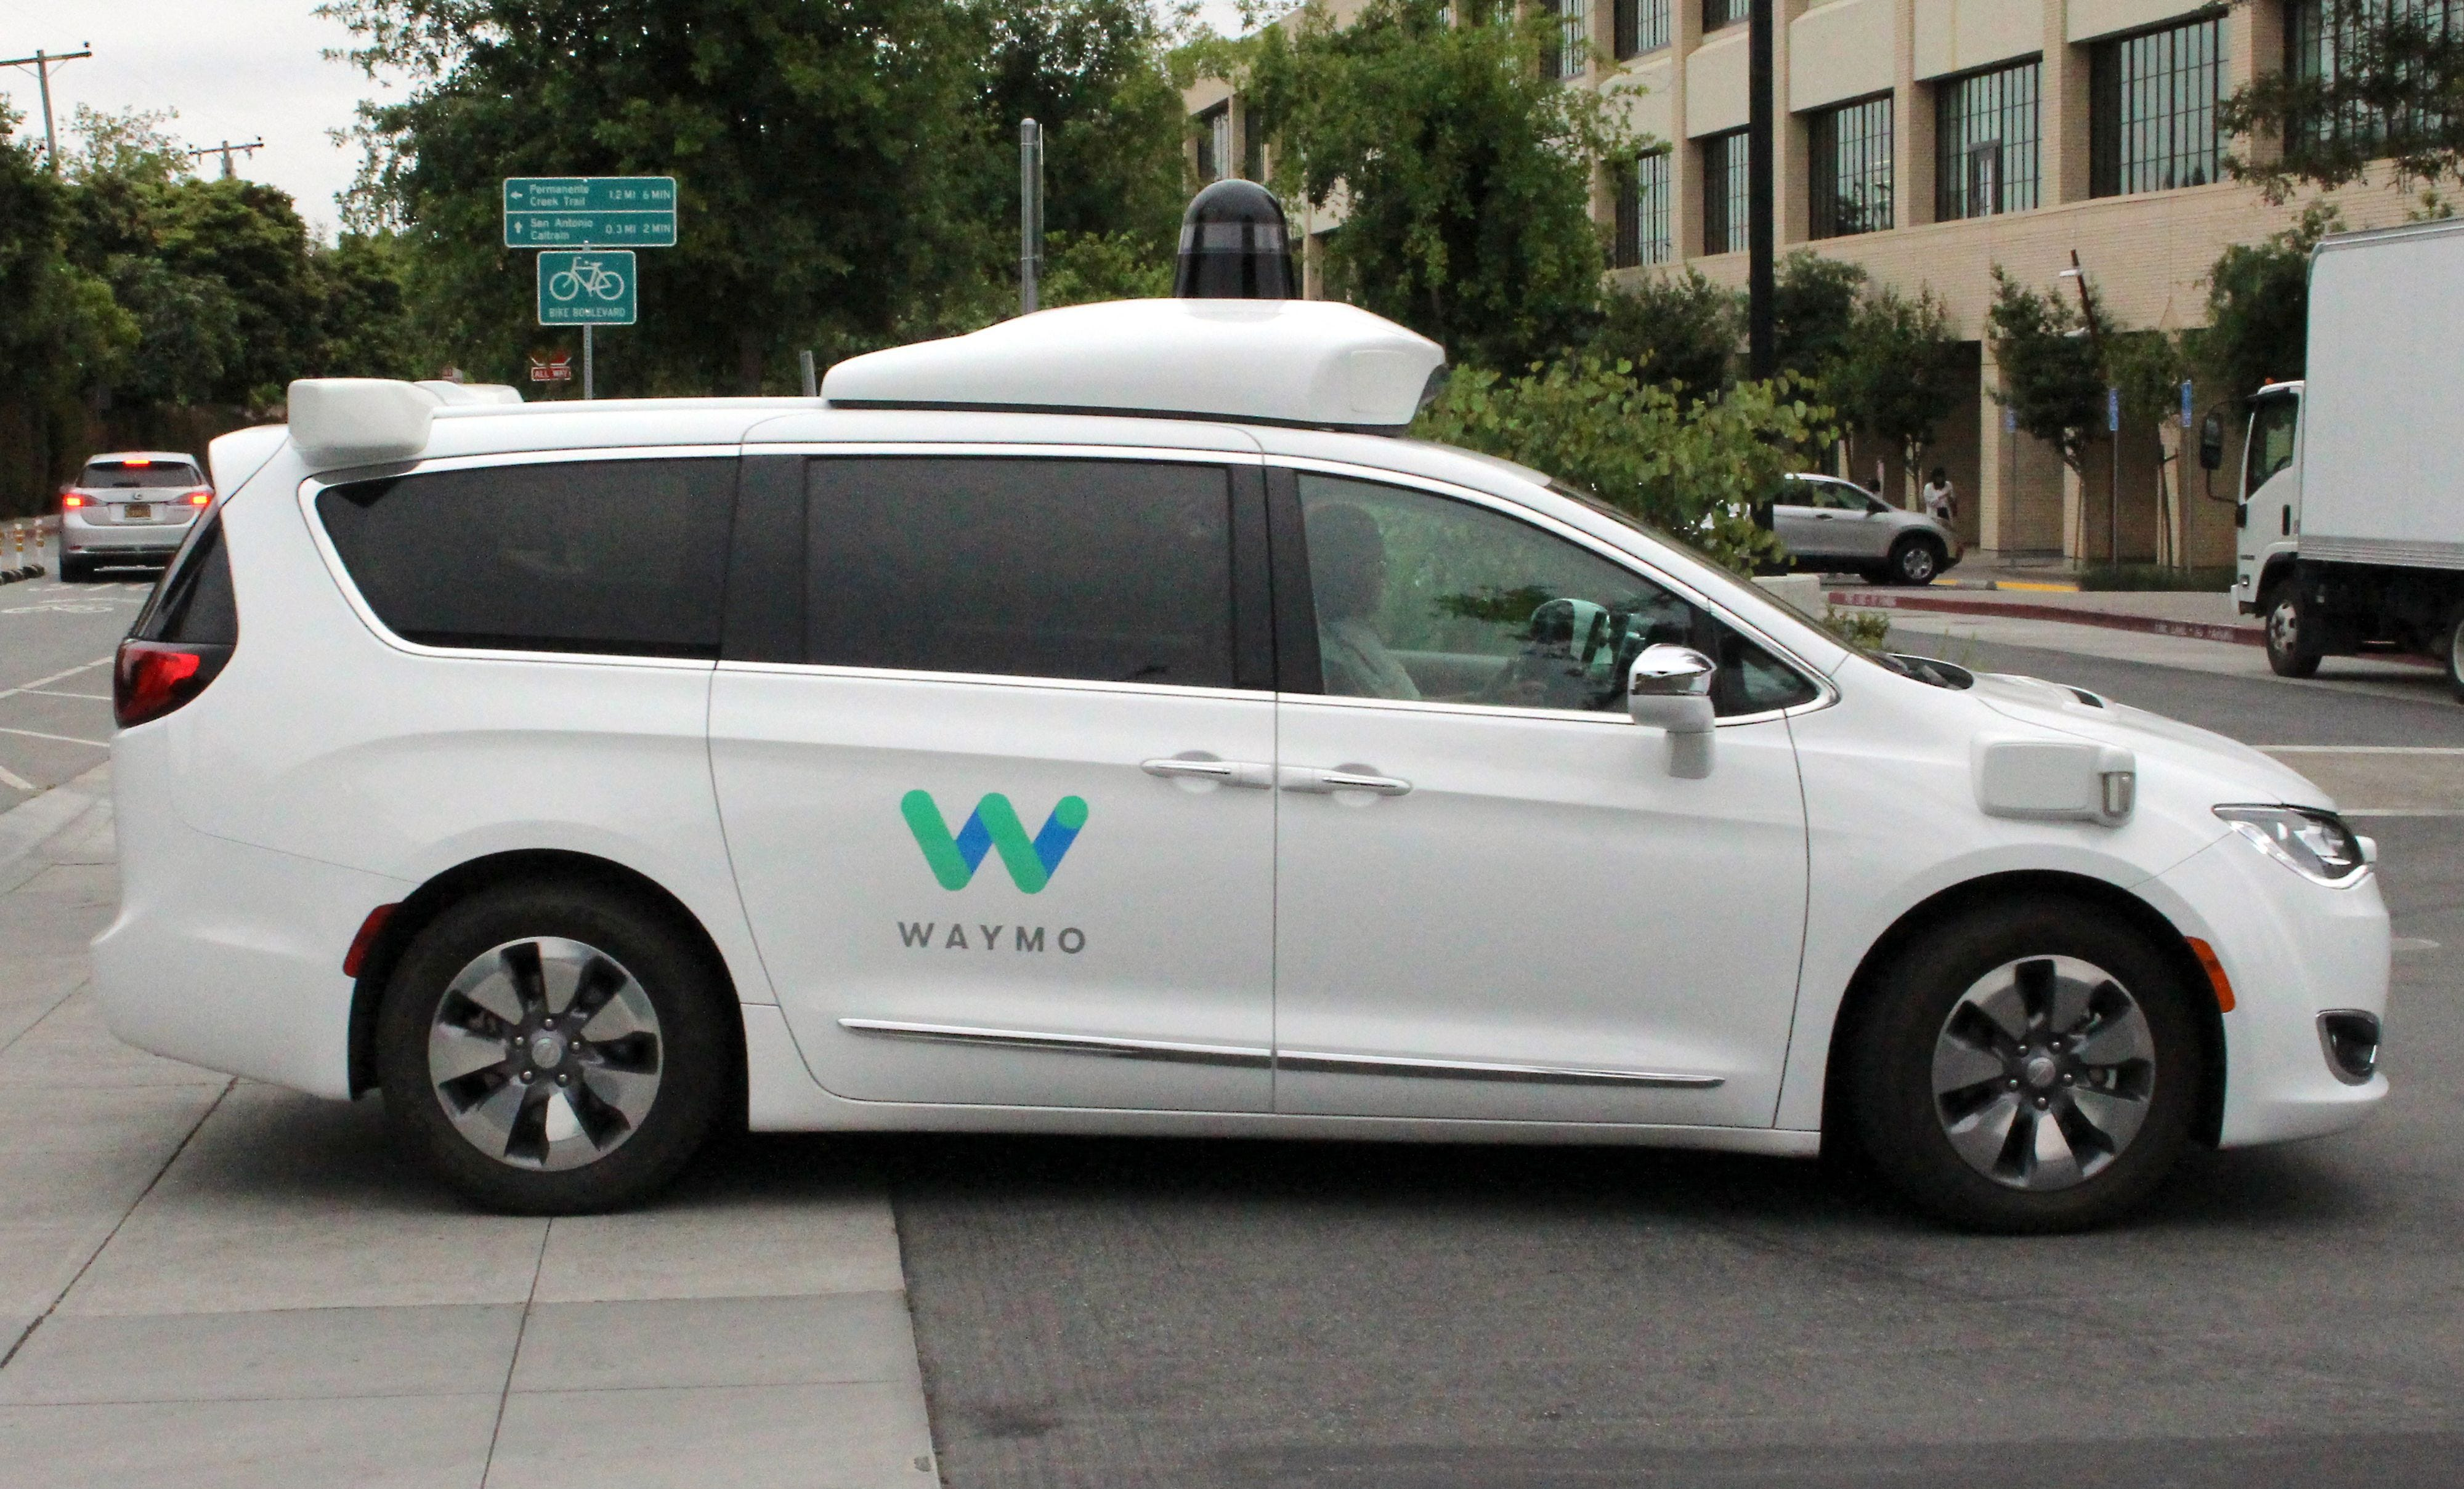 Confused self-driving cars are flooding a normally quiet dead-end street in San Francisco